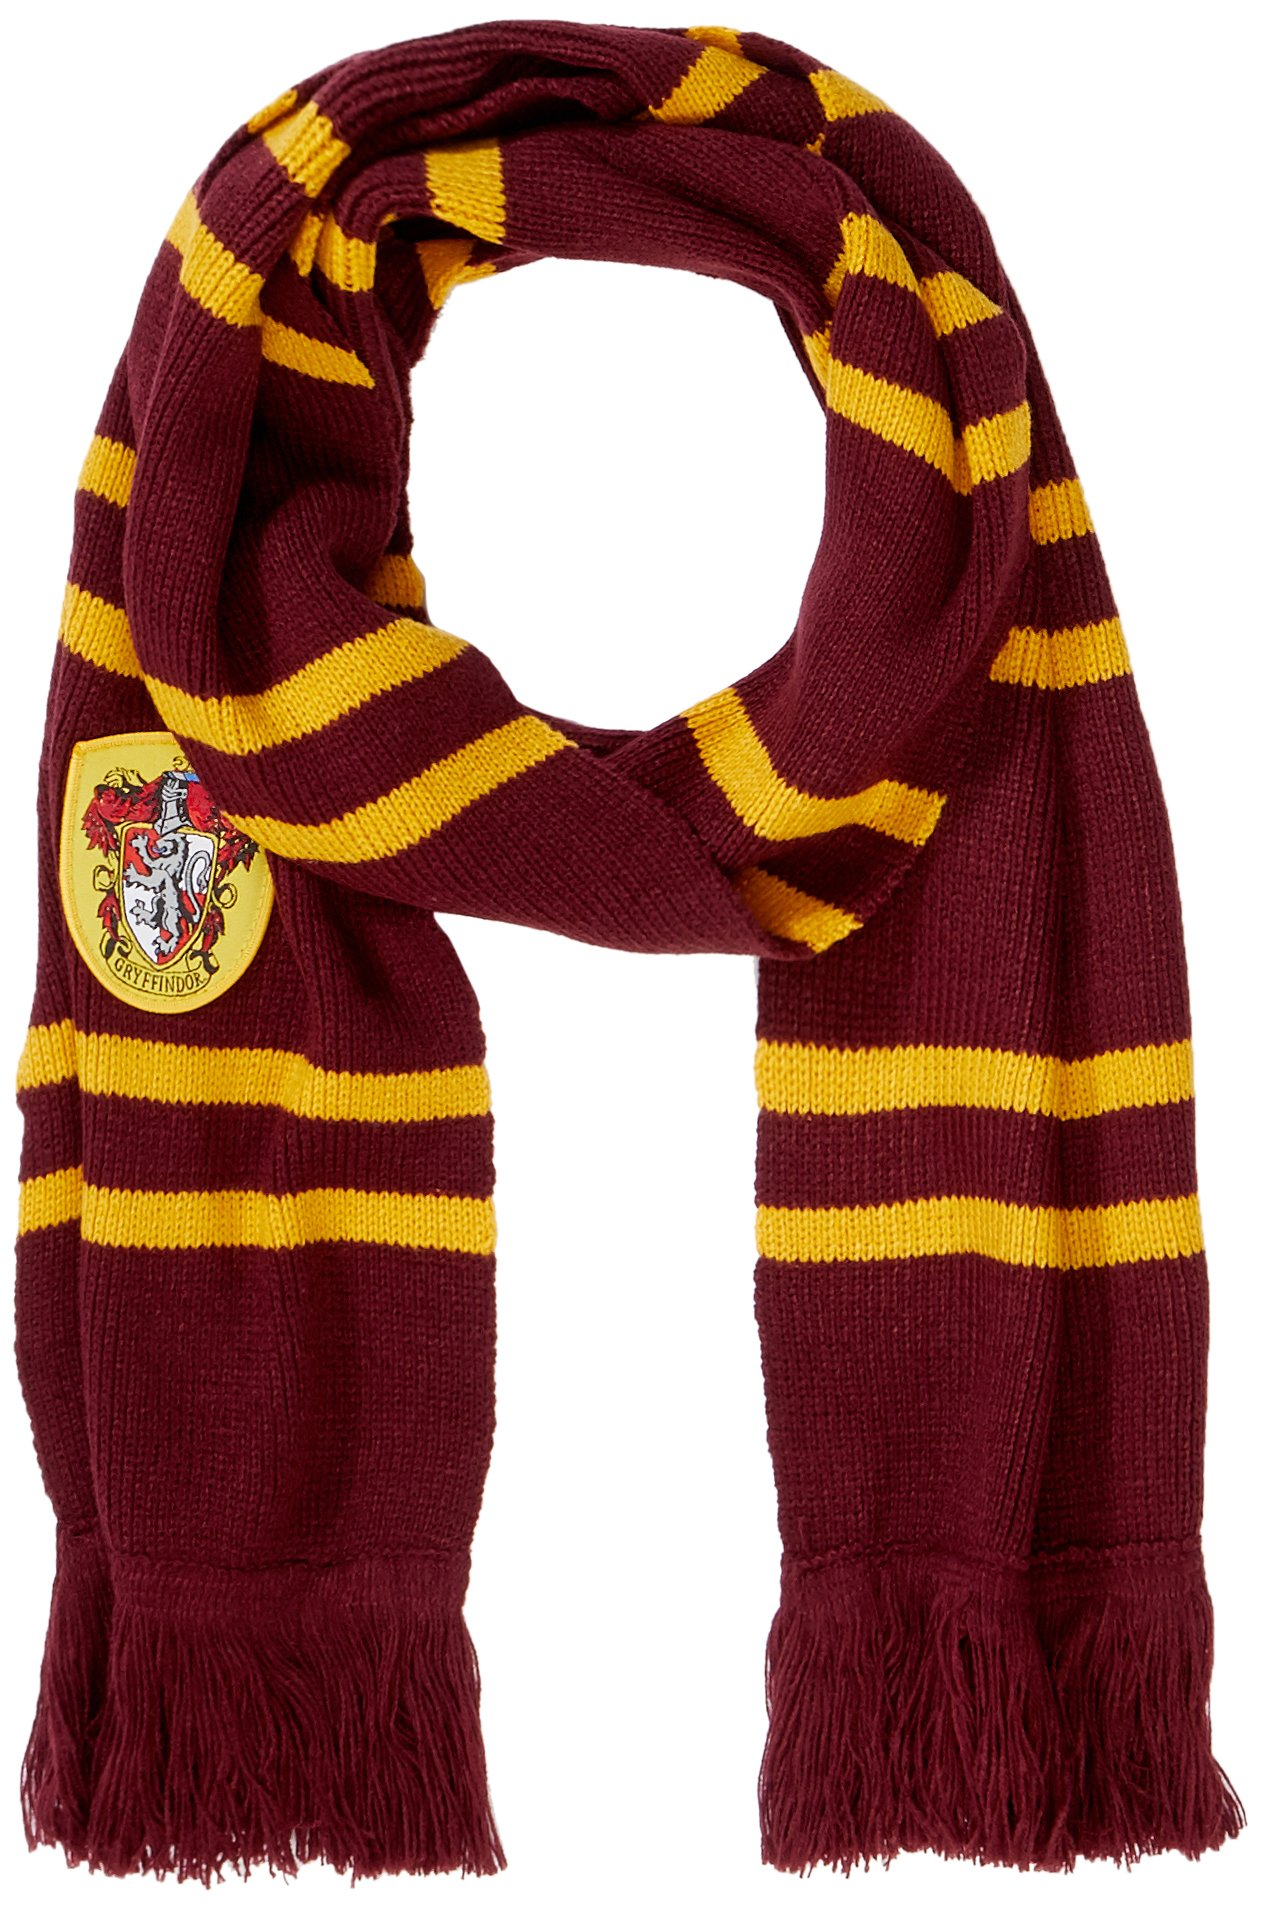 Cinereplicas - Echarpe Harry Potter Pourpre  - Ultra Douce - Gryffondor - 190 cm product image